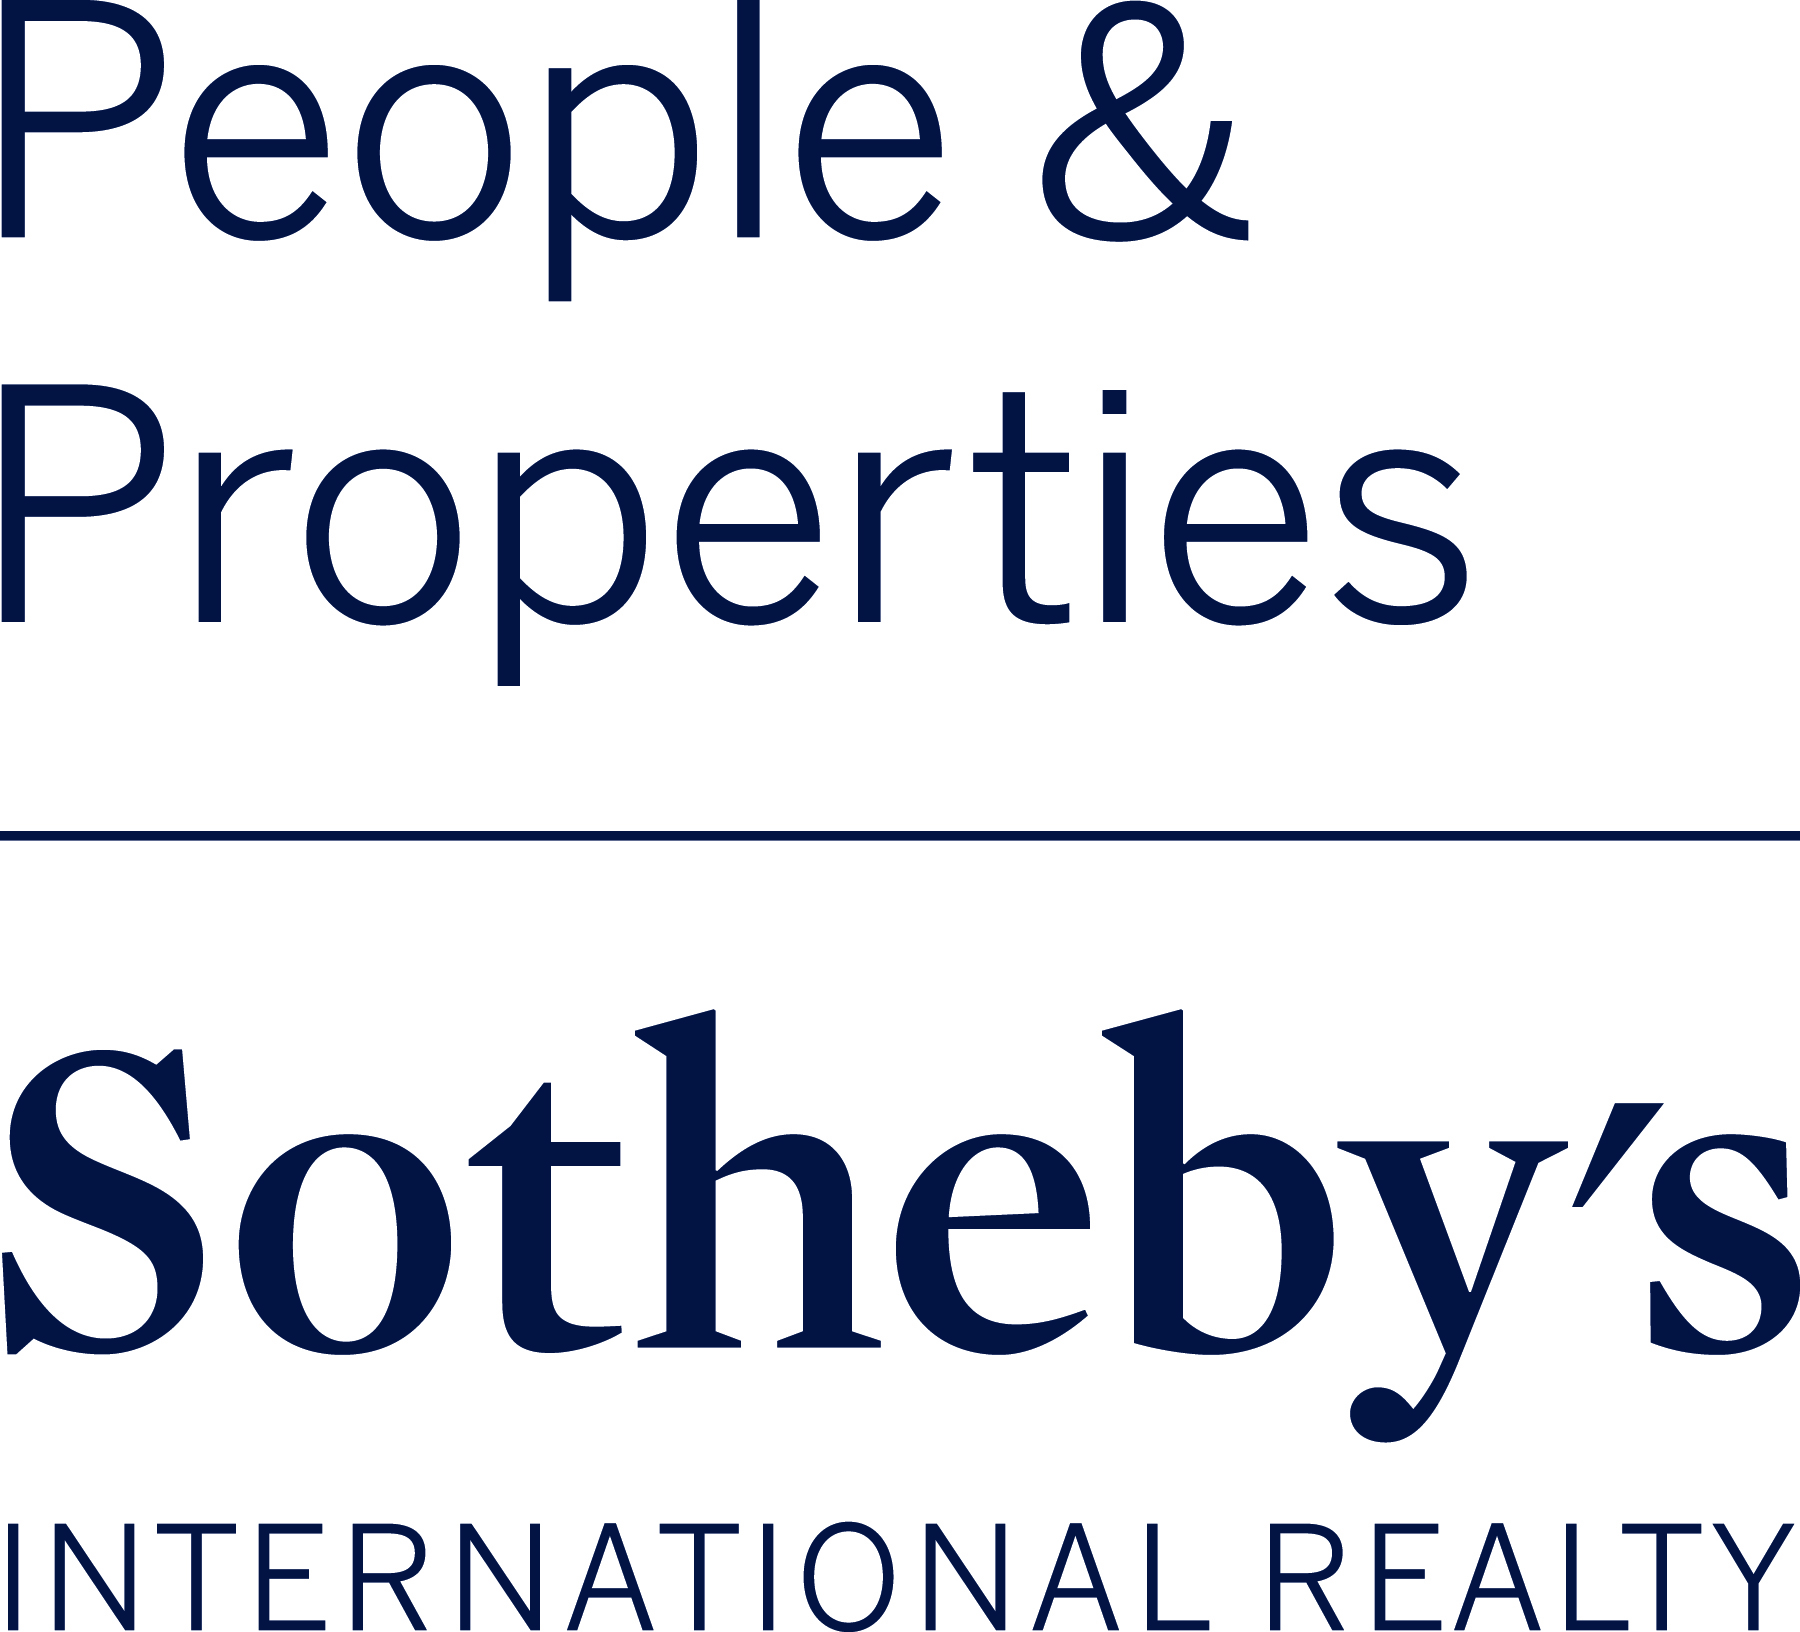 Sotheby's International Realty: People & Properties